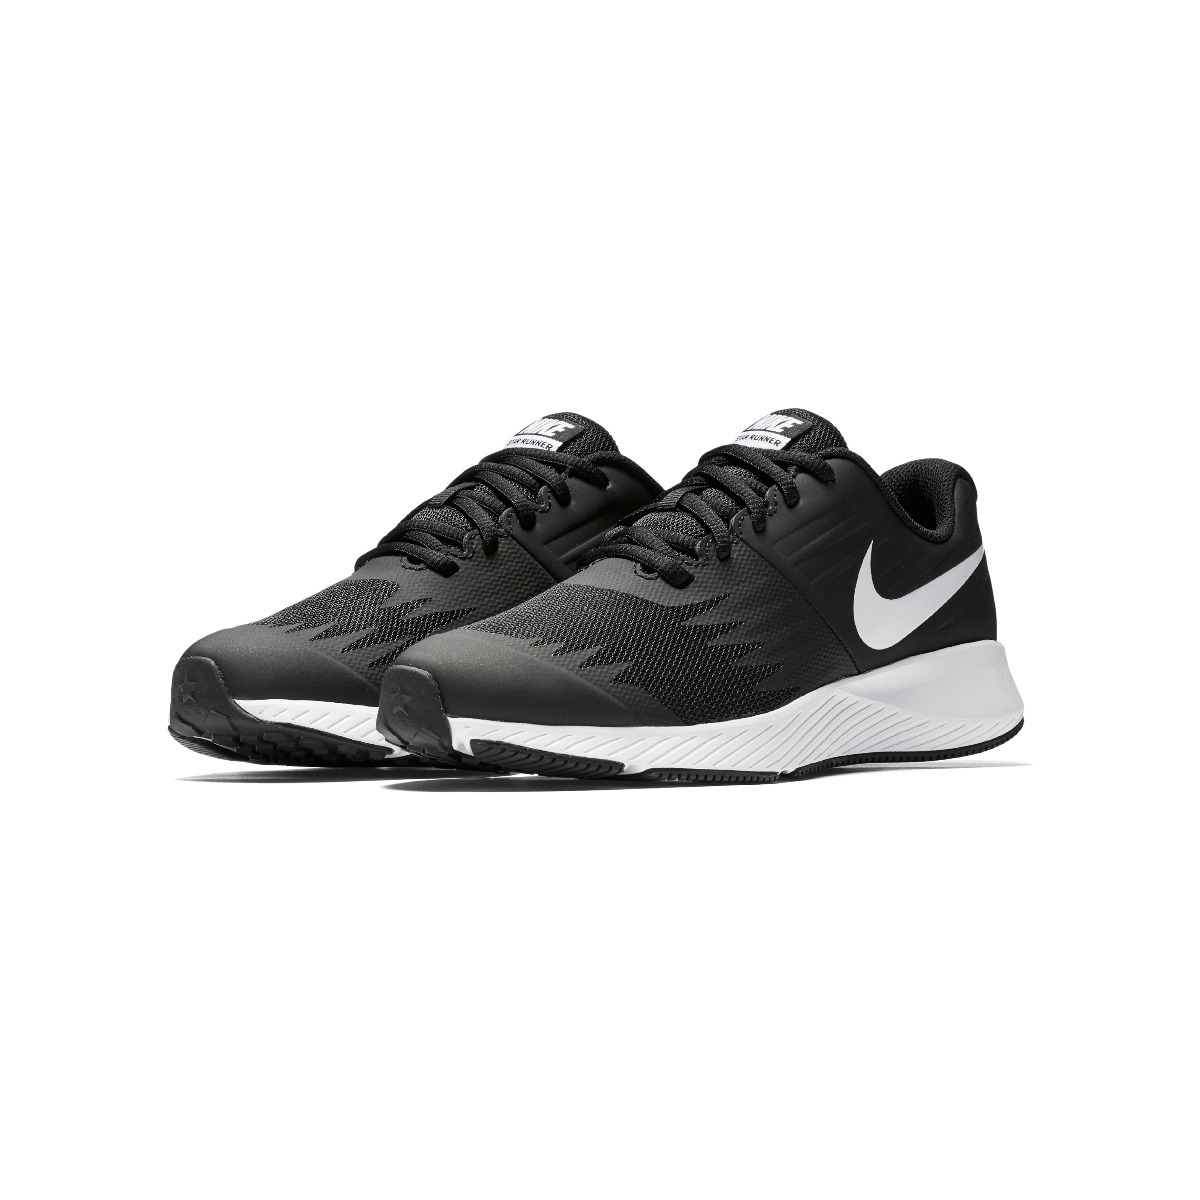 c33e499957 ... tenis nike star runner (gs) nuevos originales. Cargando zoom. sale uk  37c54 ...